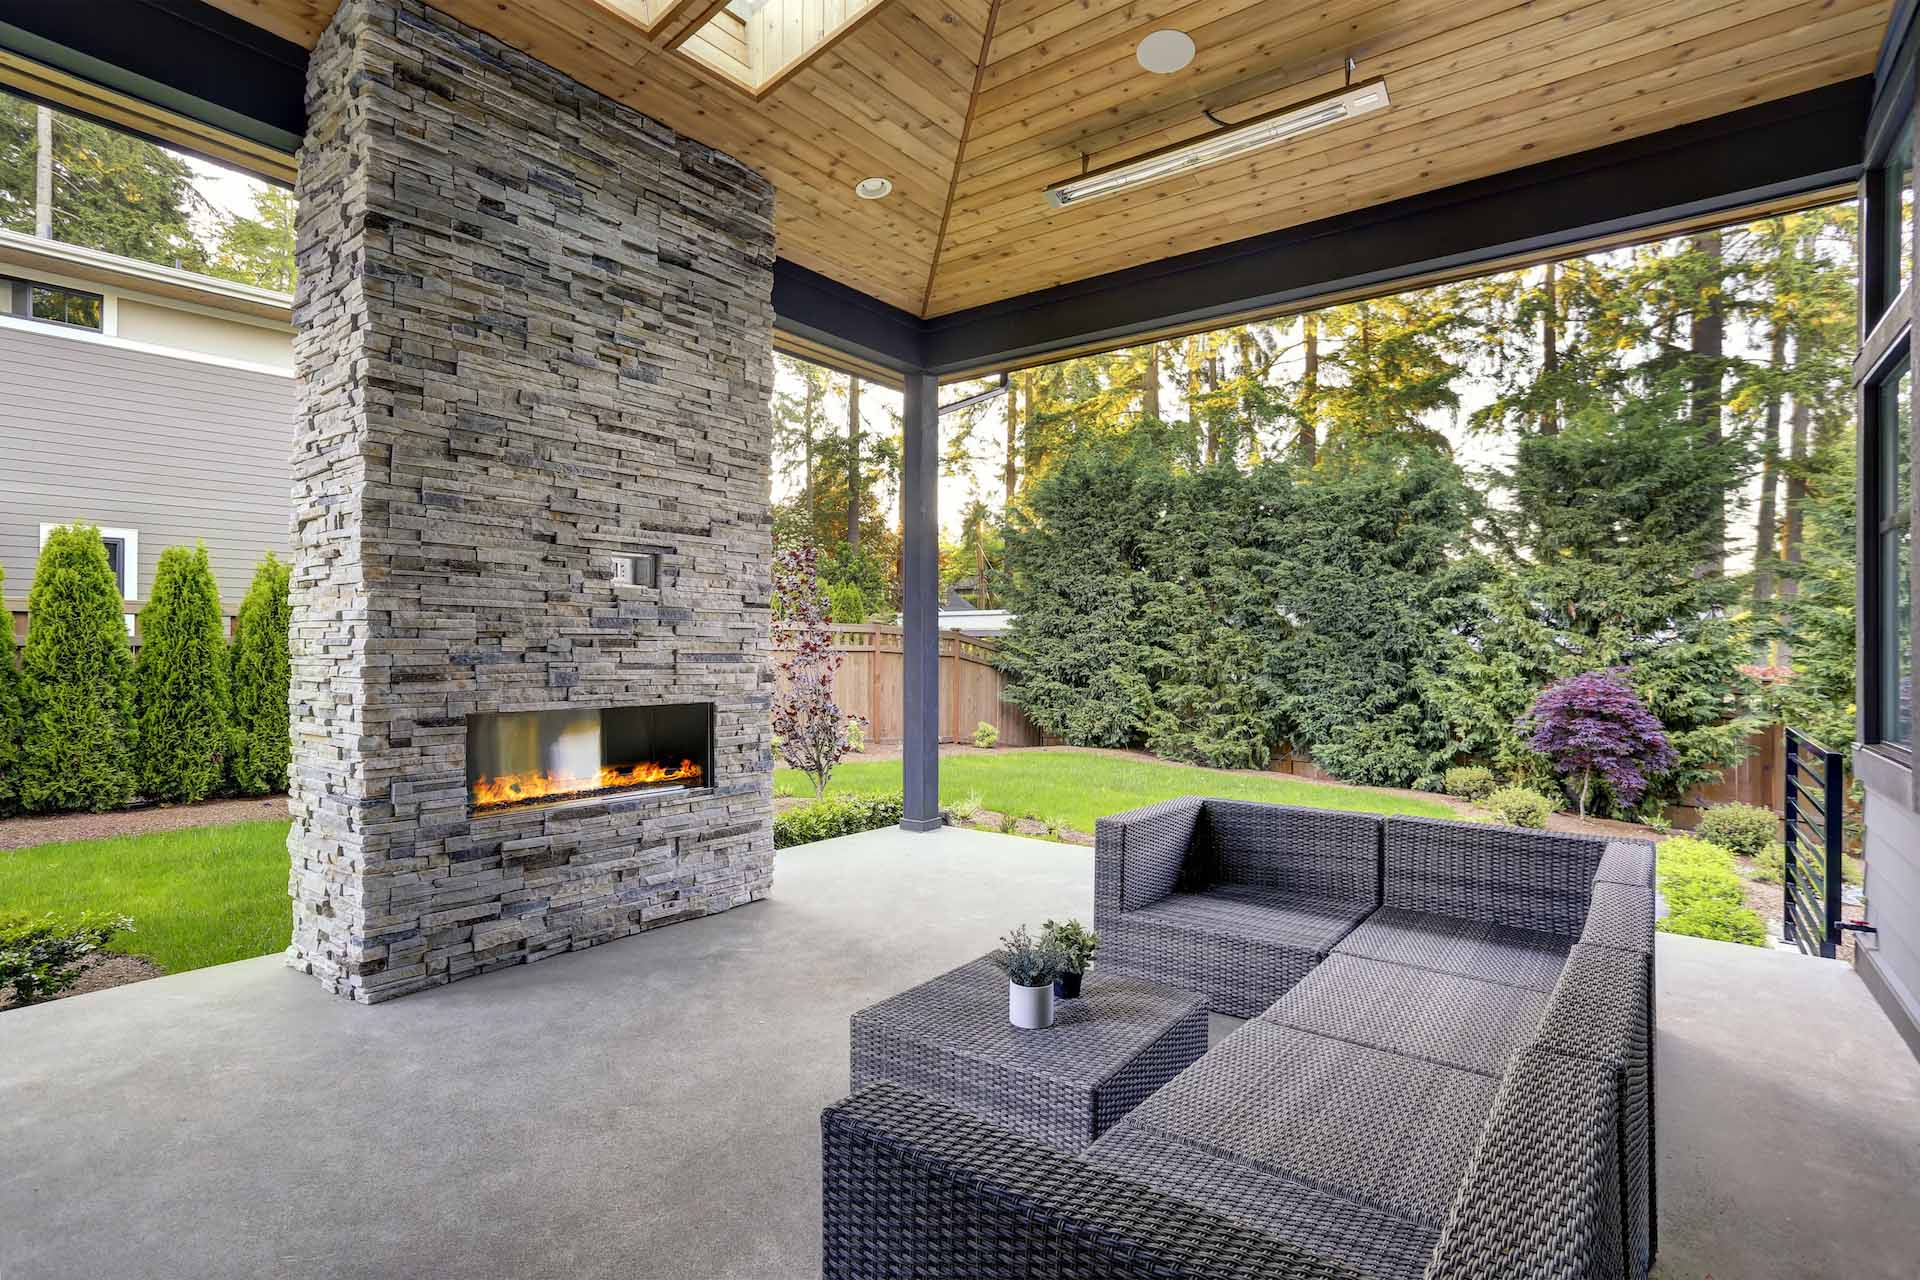 Types of Hardscapes: Concrete or Stamped Concrete